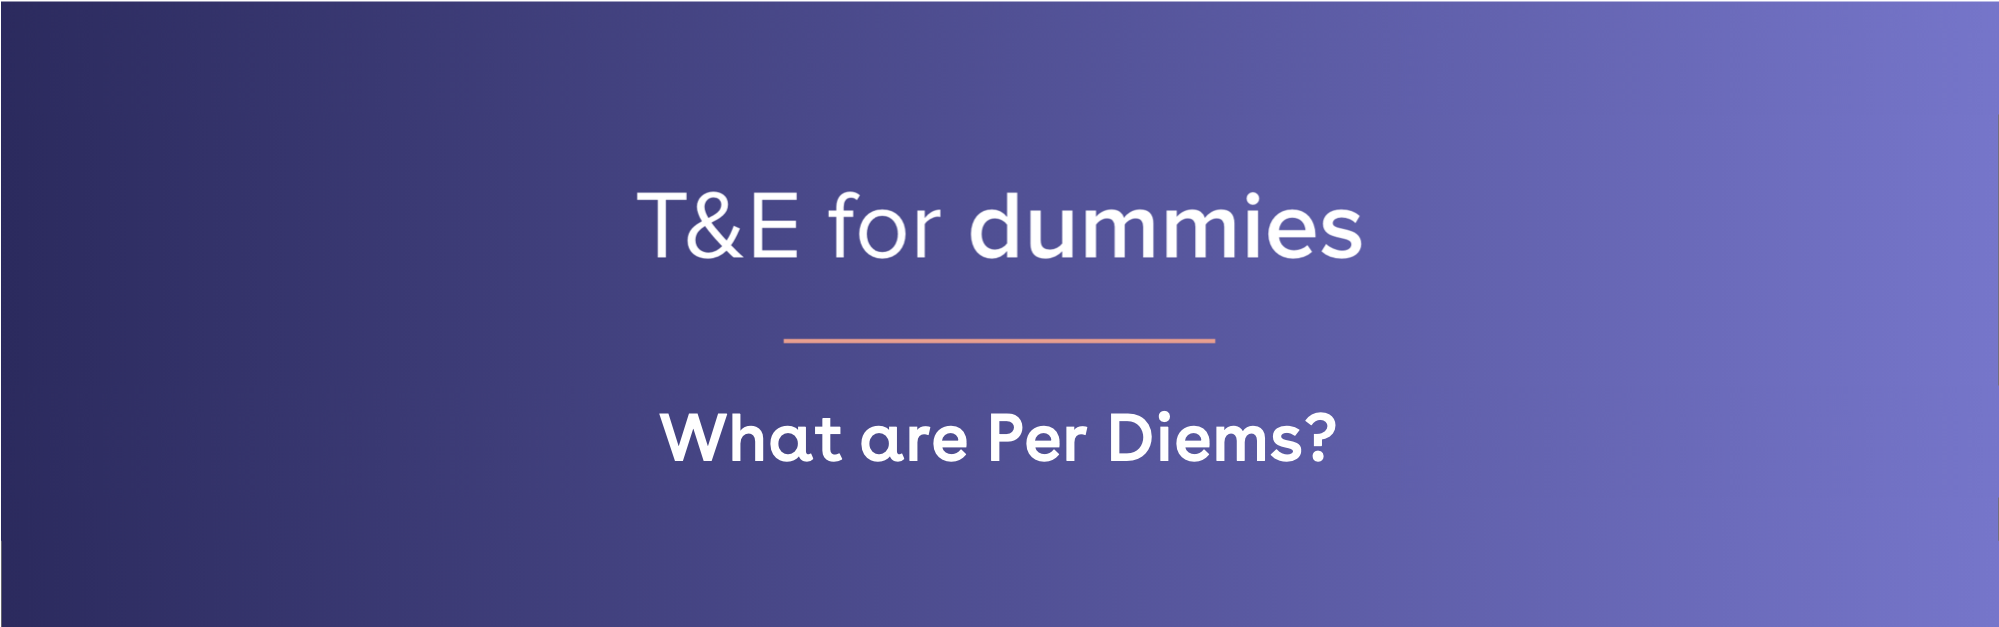 what are per diems